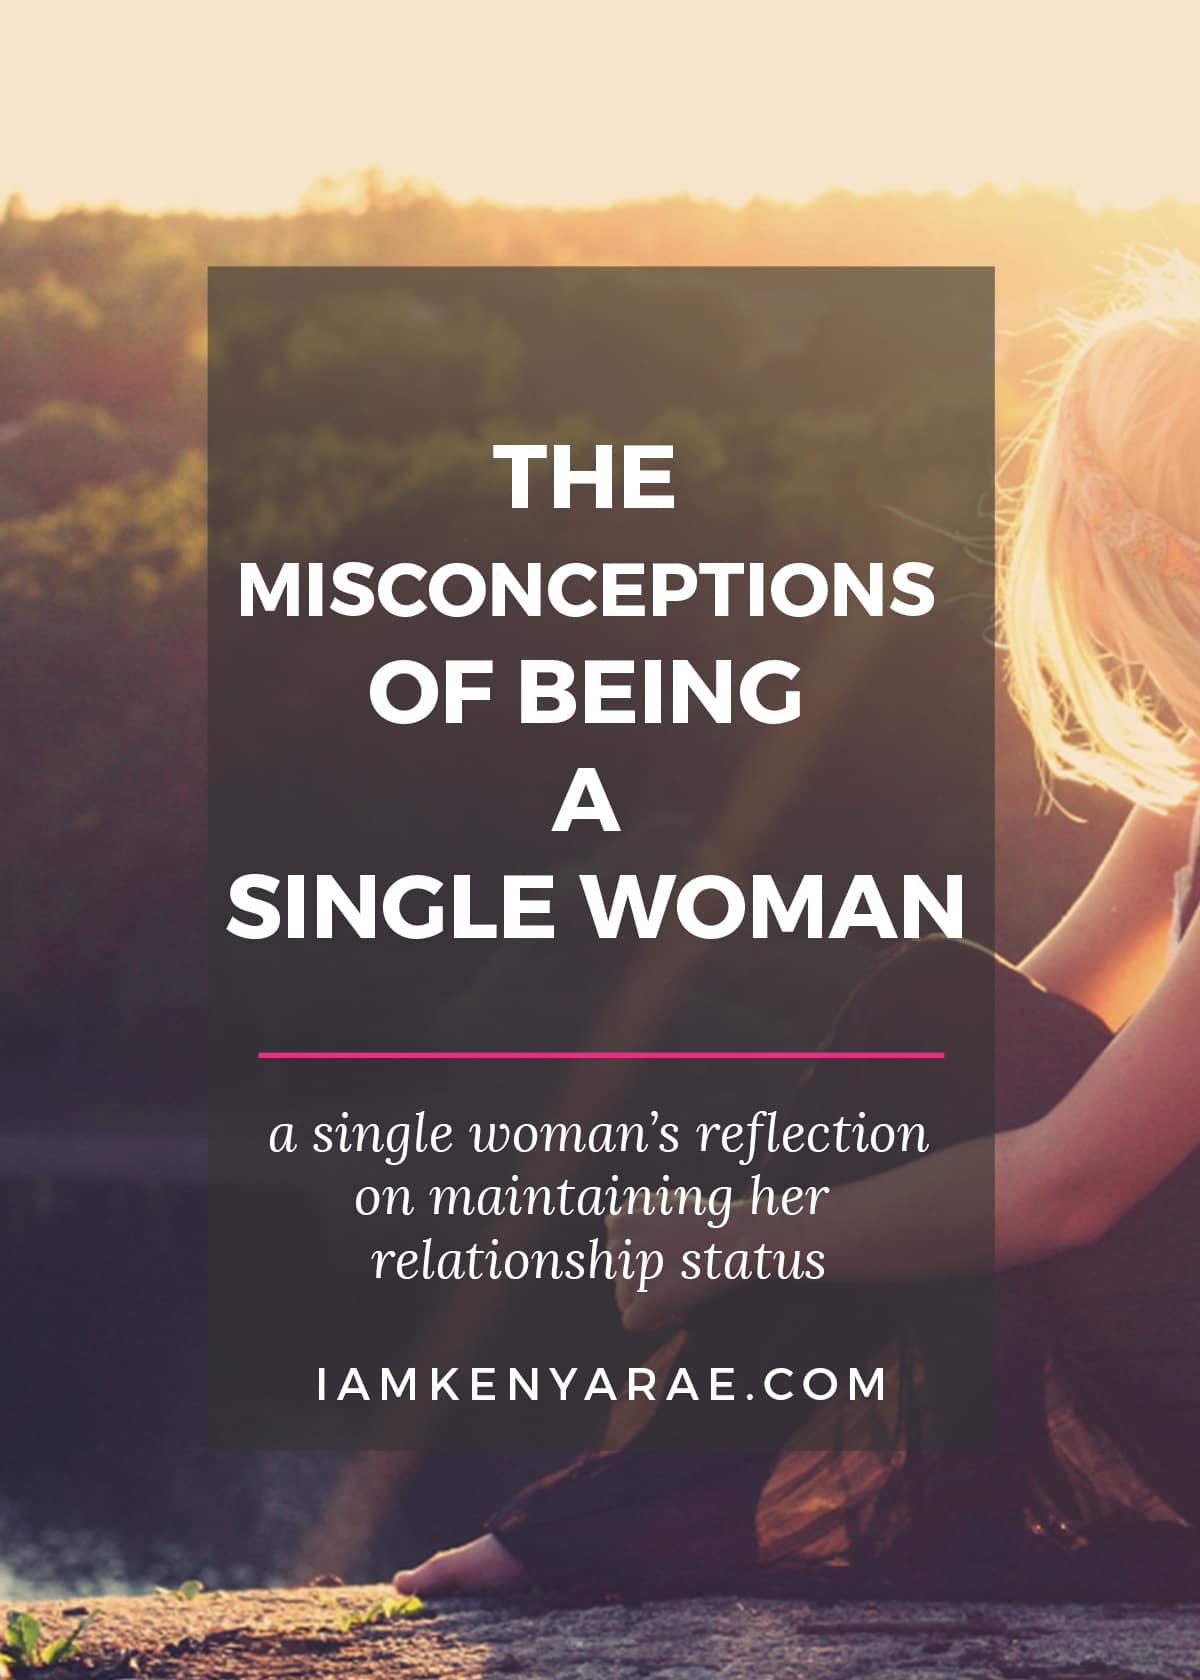 The Misconceptions of Being a Single Woman